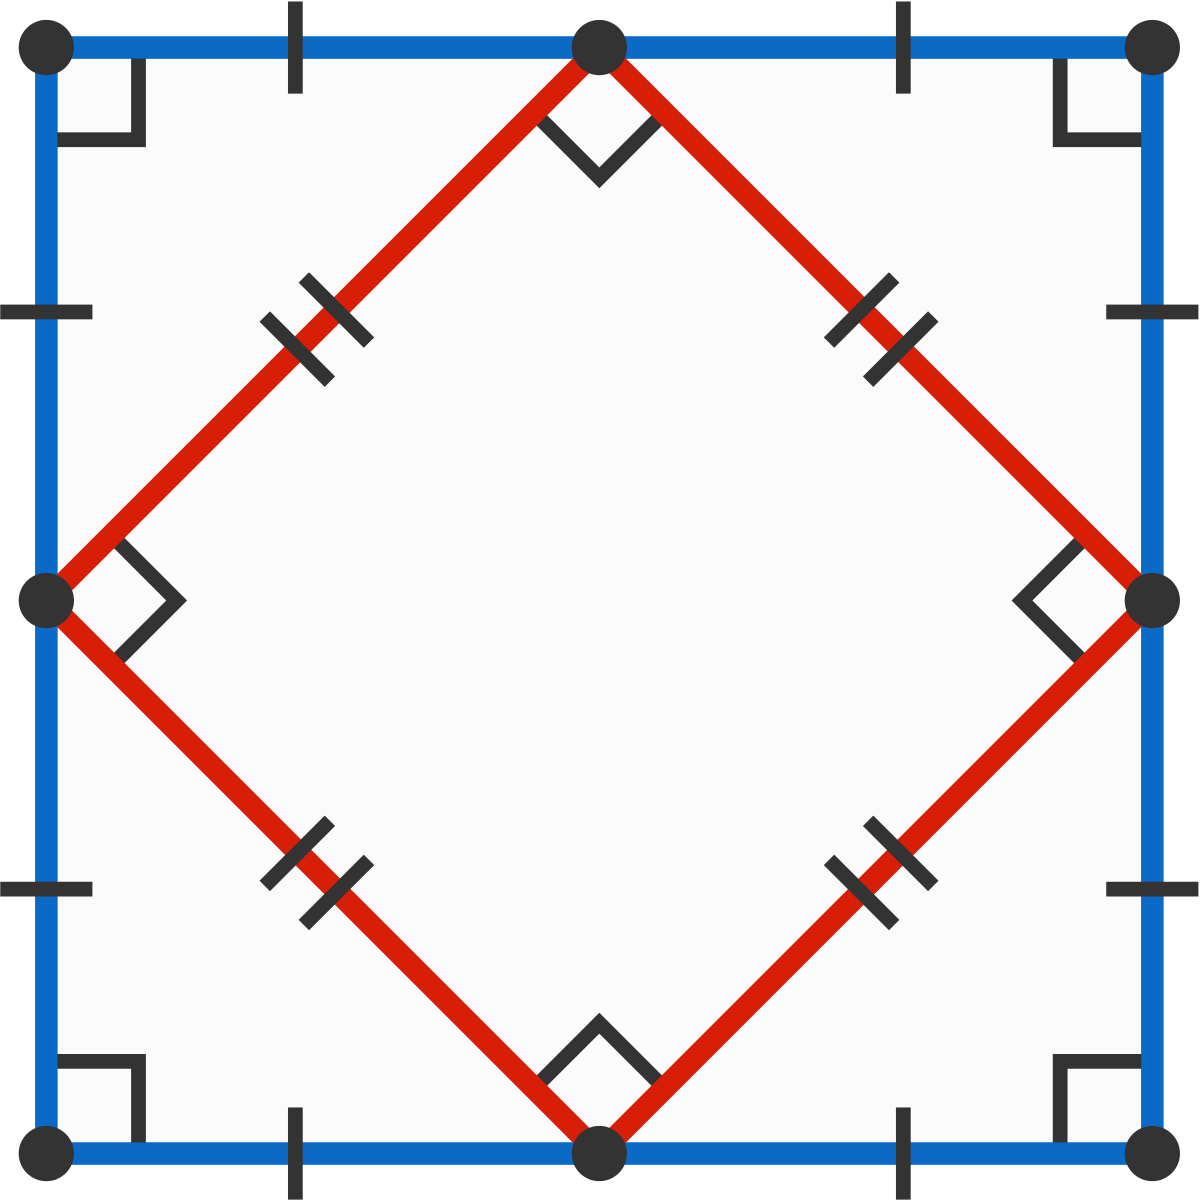 A red square is formed when connecting the midpoints of the blue square.  What if the blue shape were some other quadrilateral?